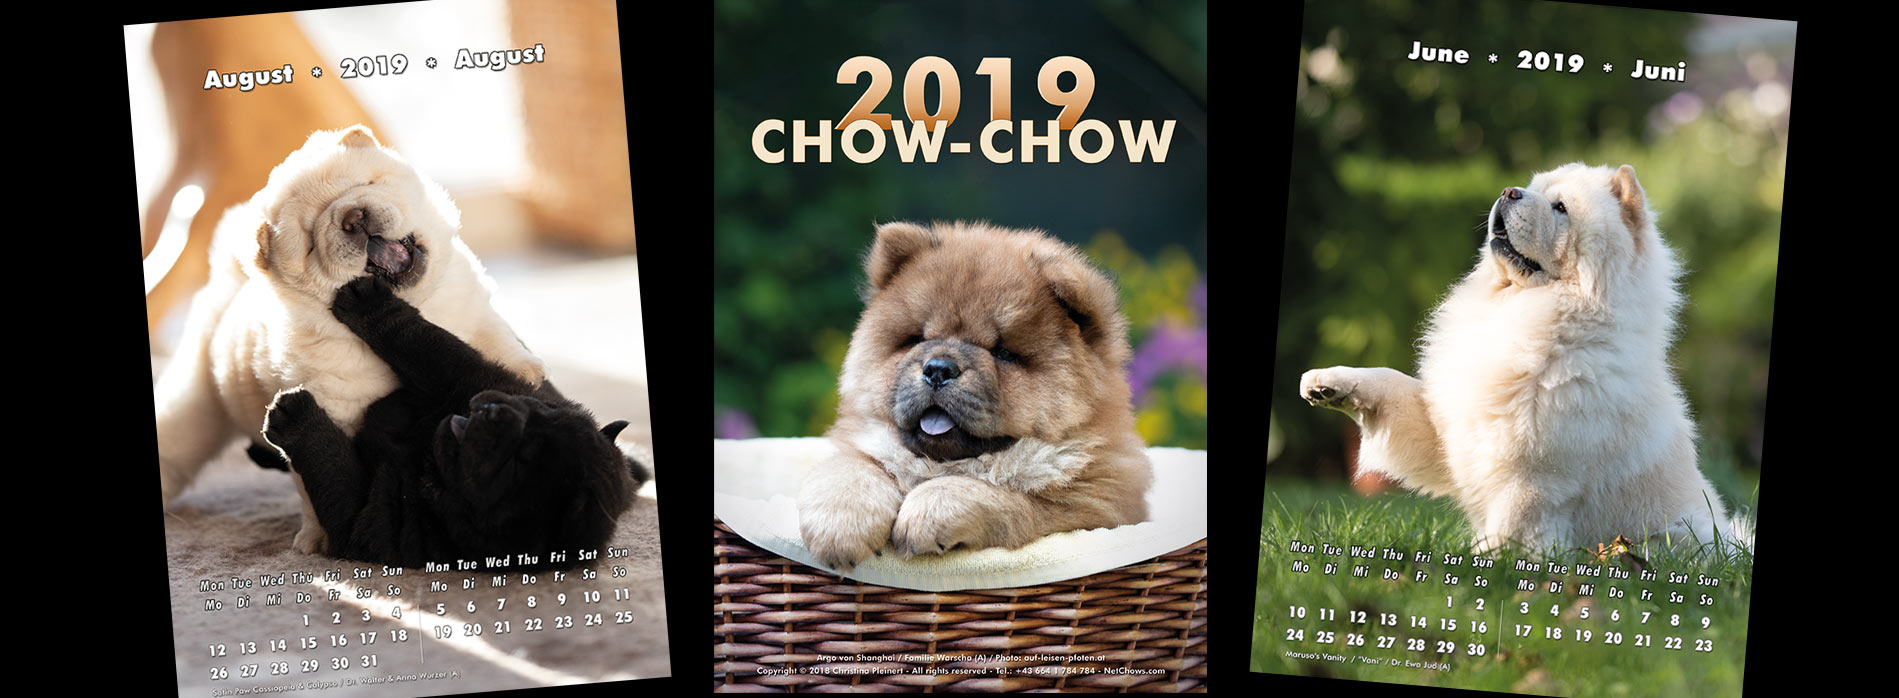 NetChows is proud to present the Chow-Chow Calendar 2019